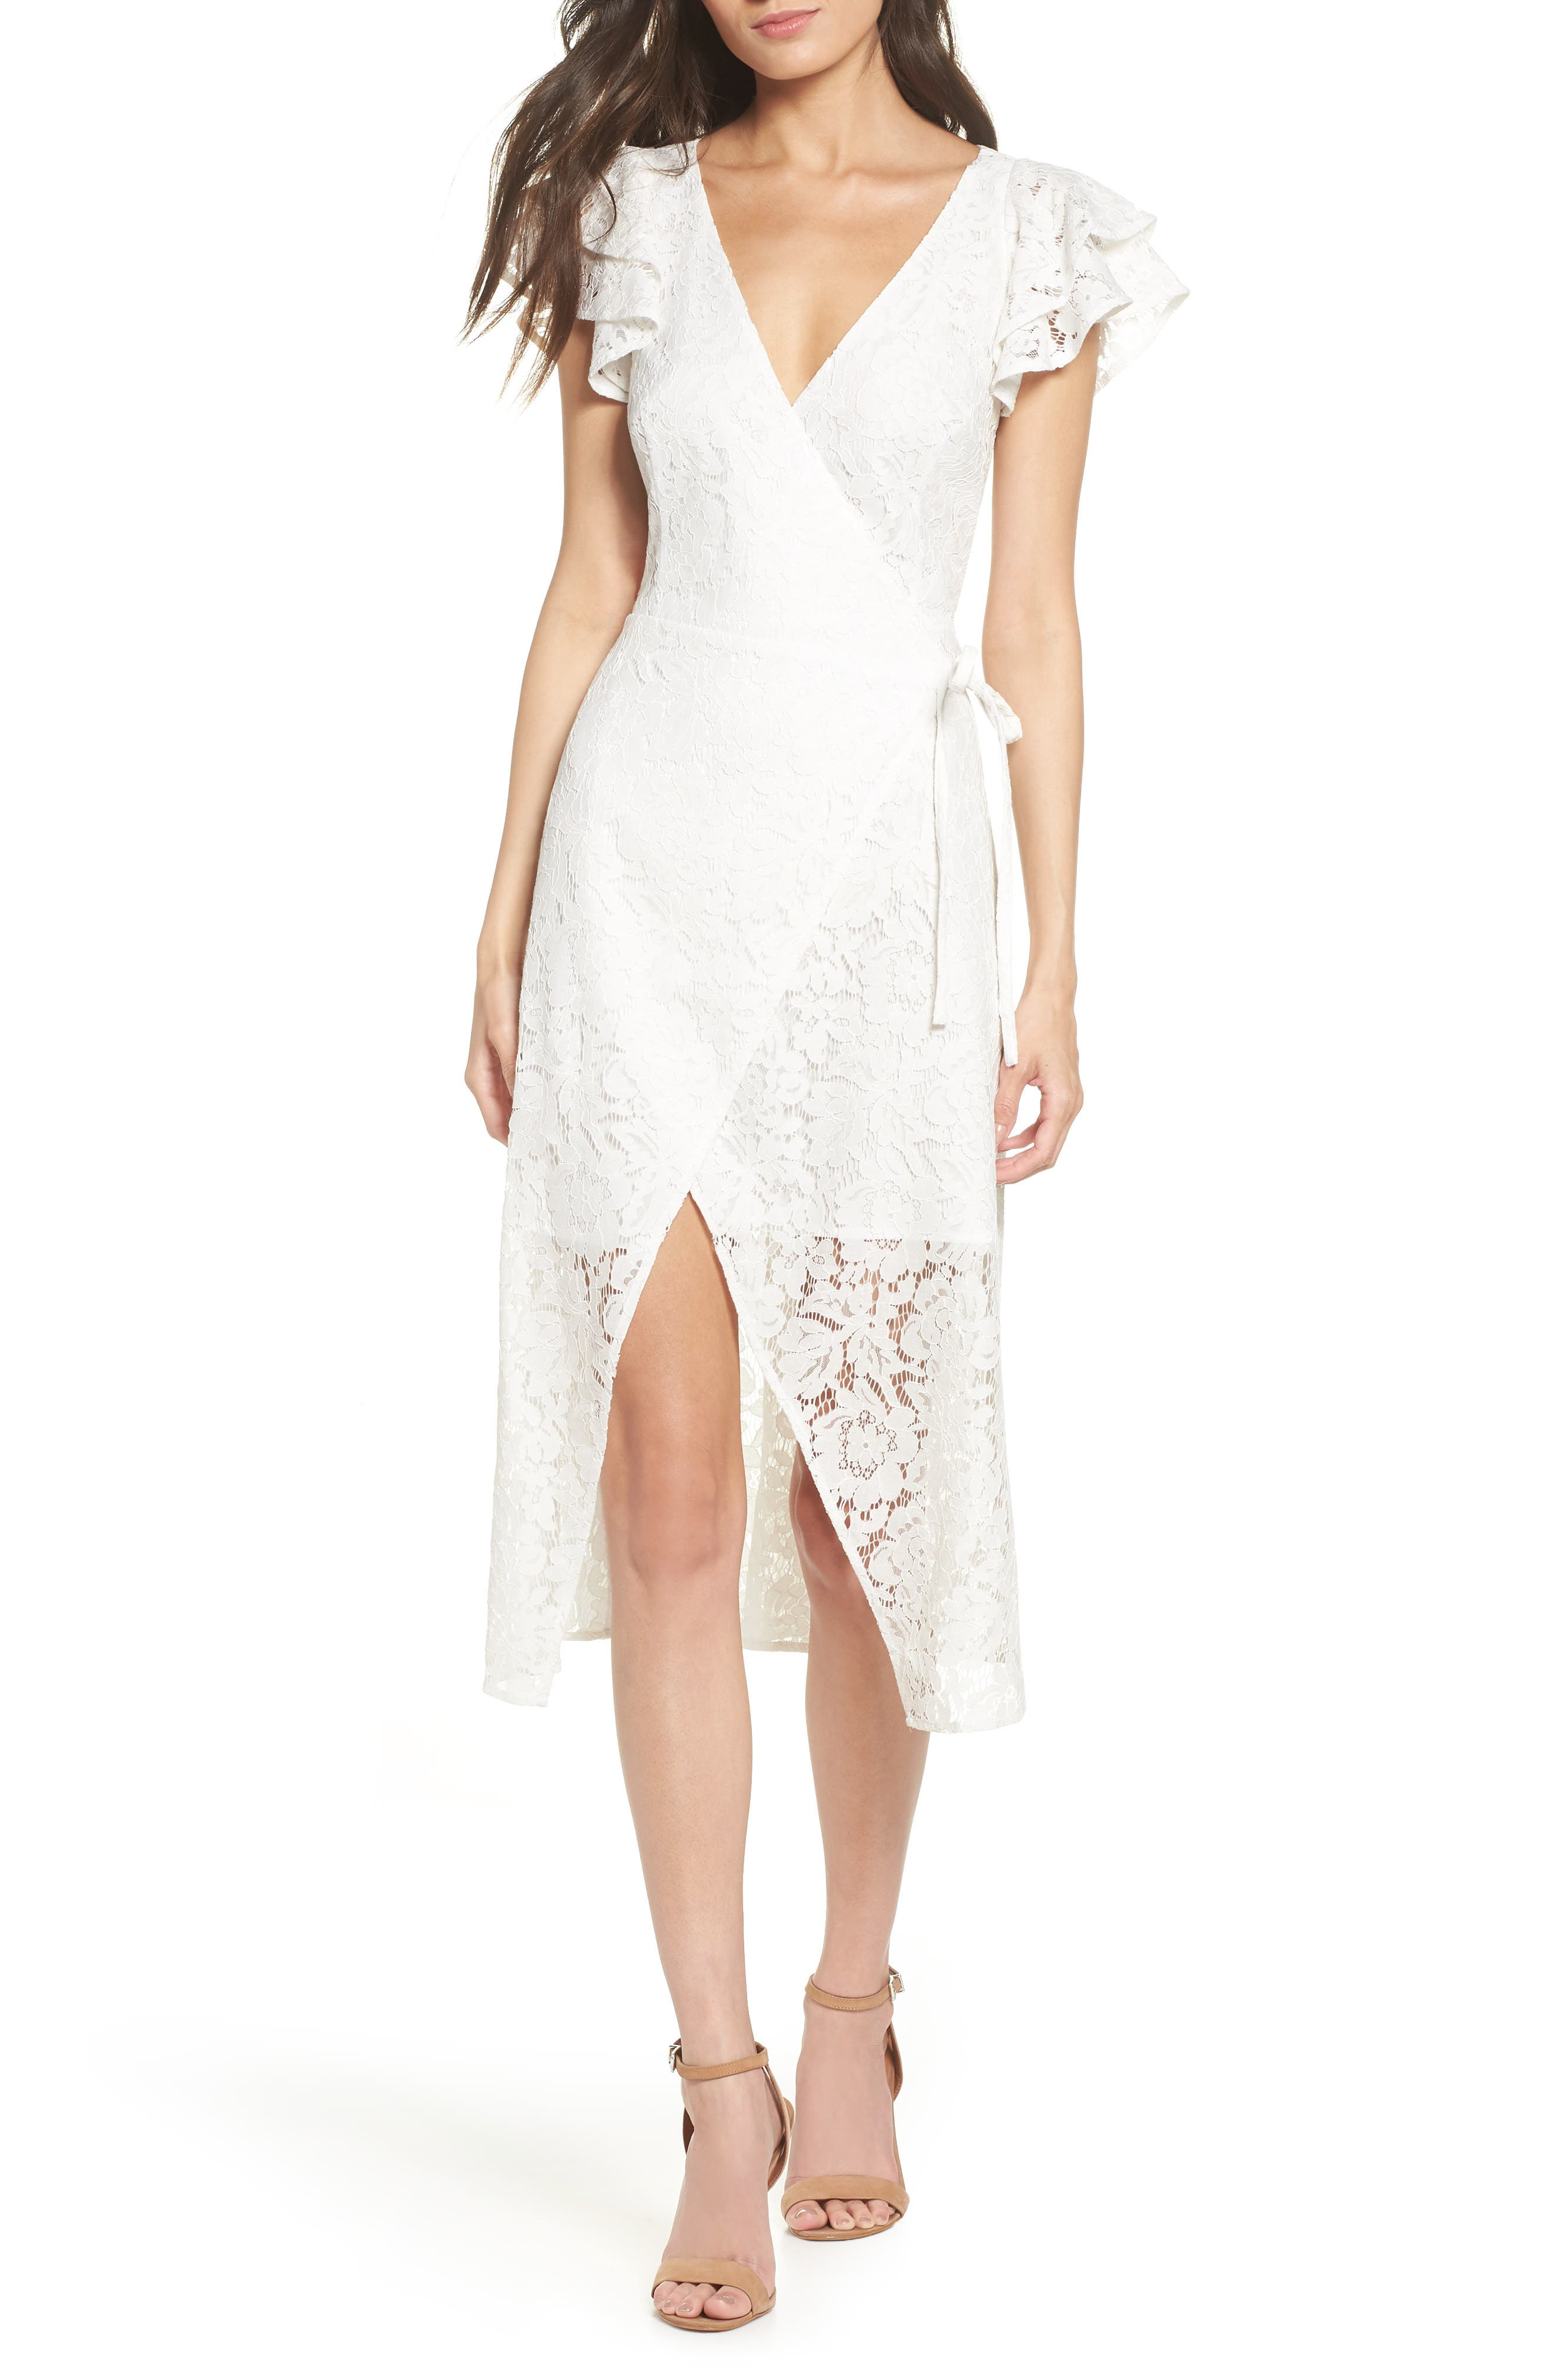 ALI & JAY Lace And Paper Flowers Wrap Midi Dress in White